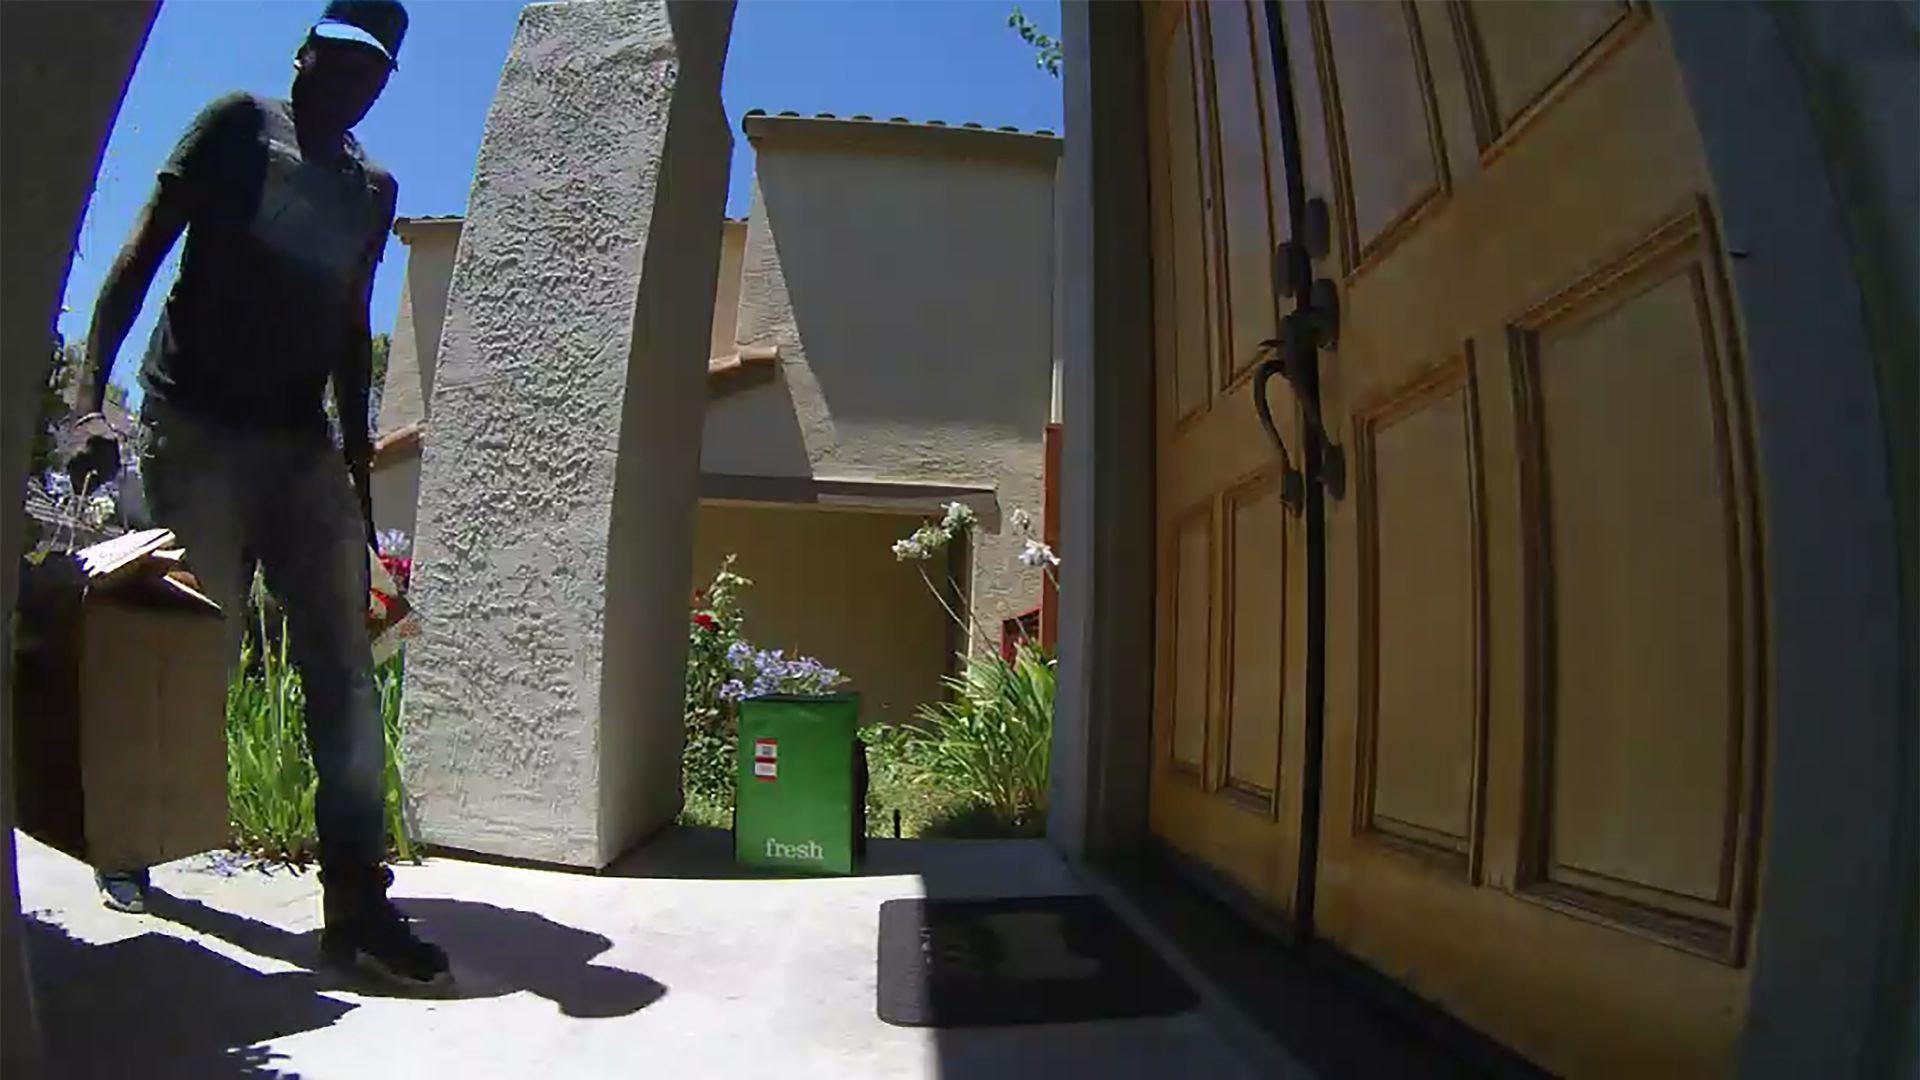 A man delivers a package to a door.